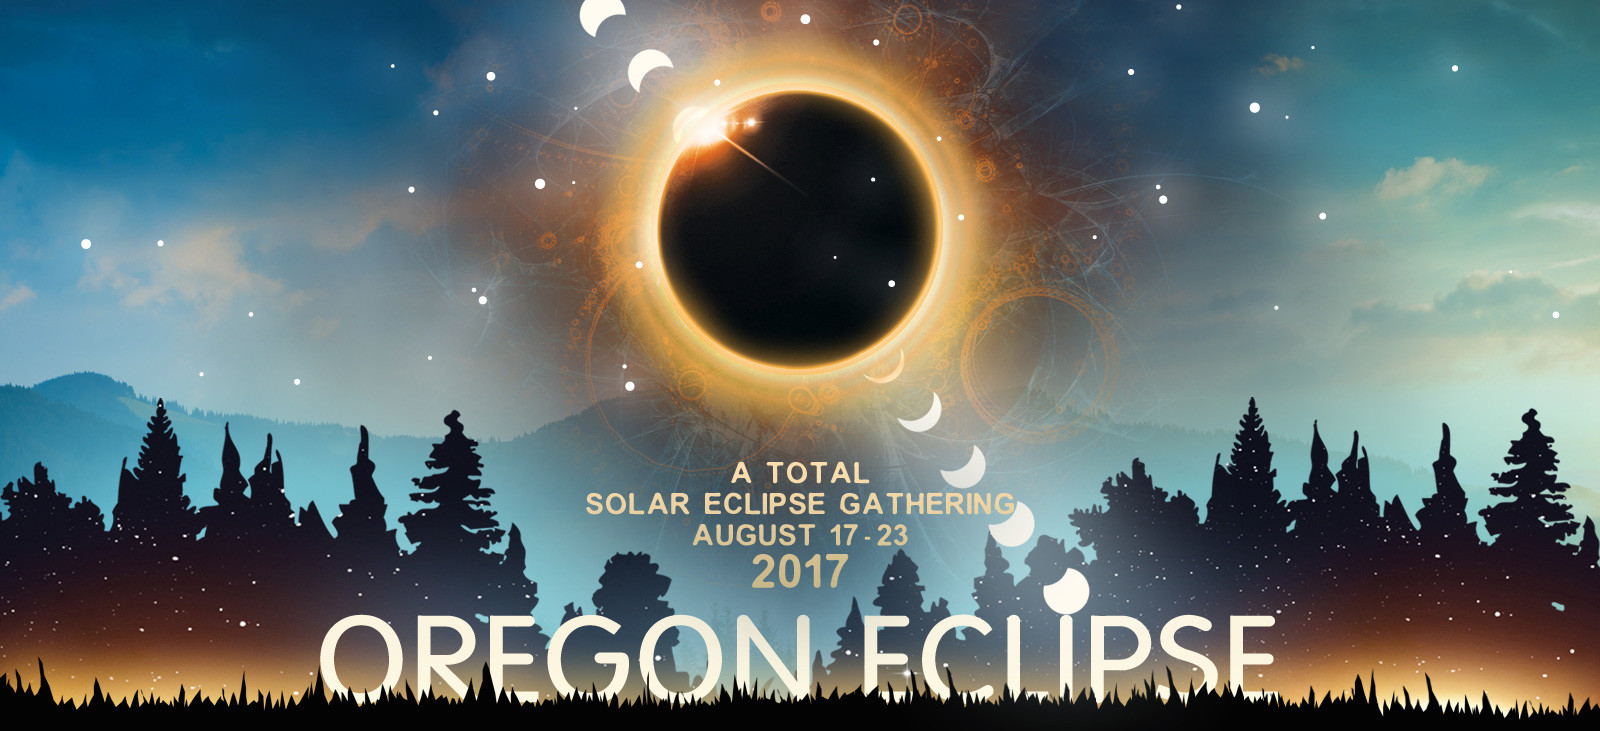 Oregon Eclipse: A Total Solare Eclipse Gathering, August 12-23, 2017